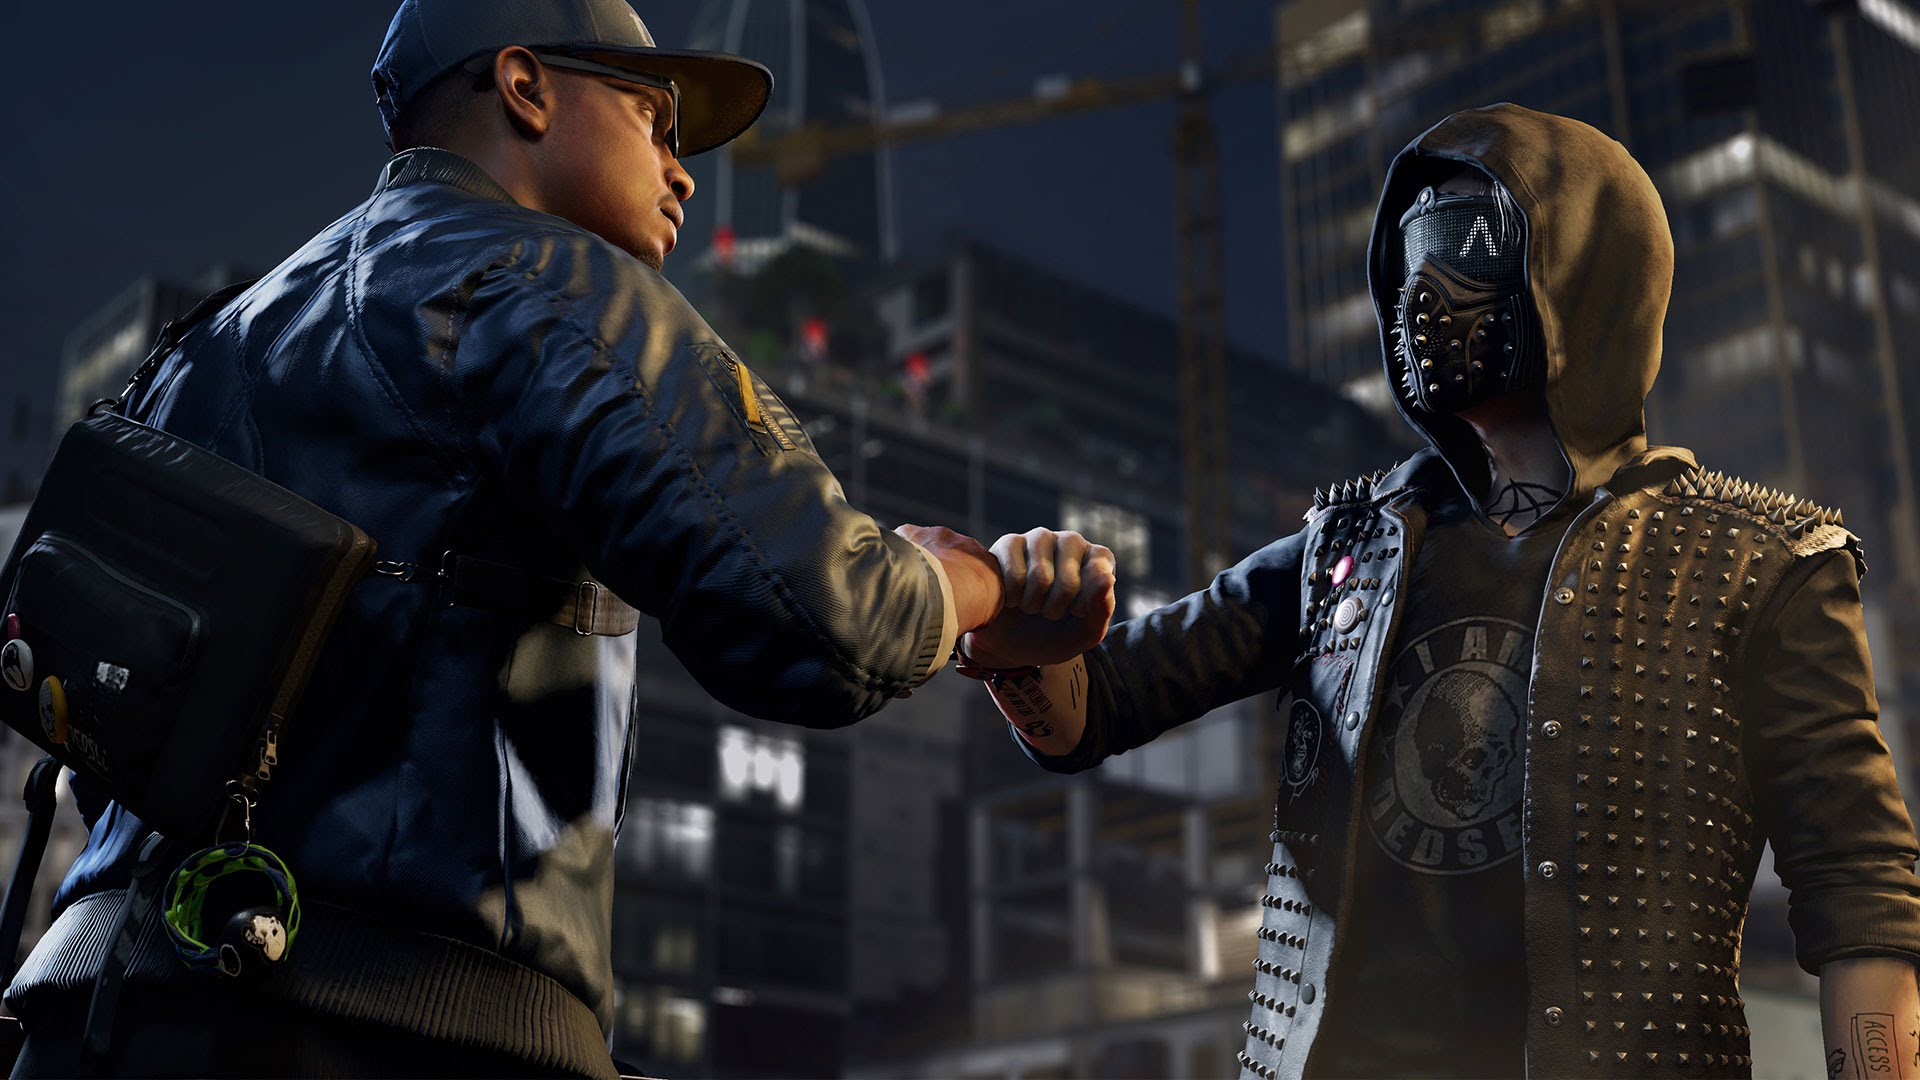 Watch Dogs 2 on PC gives the mouse and keyboard some extra